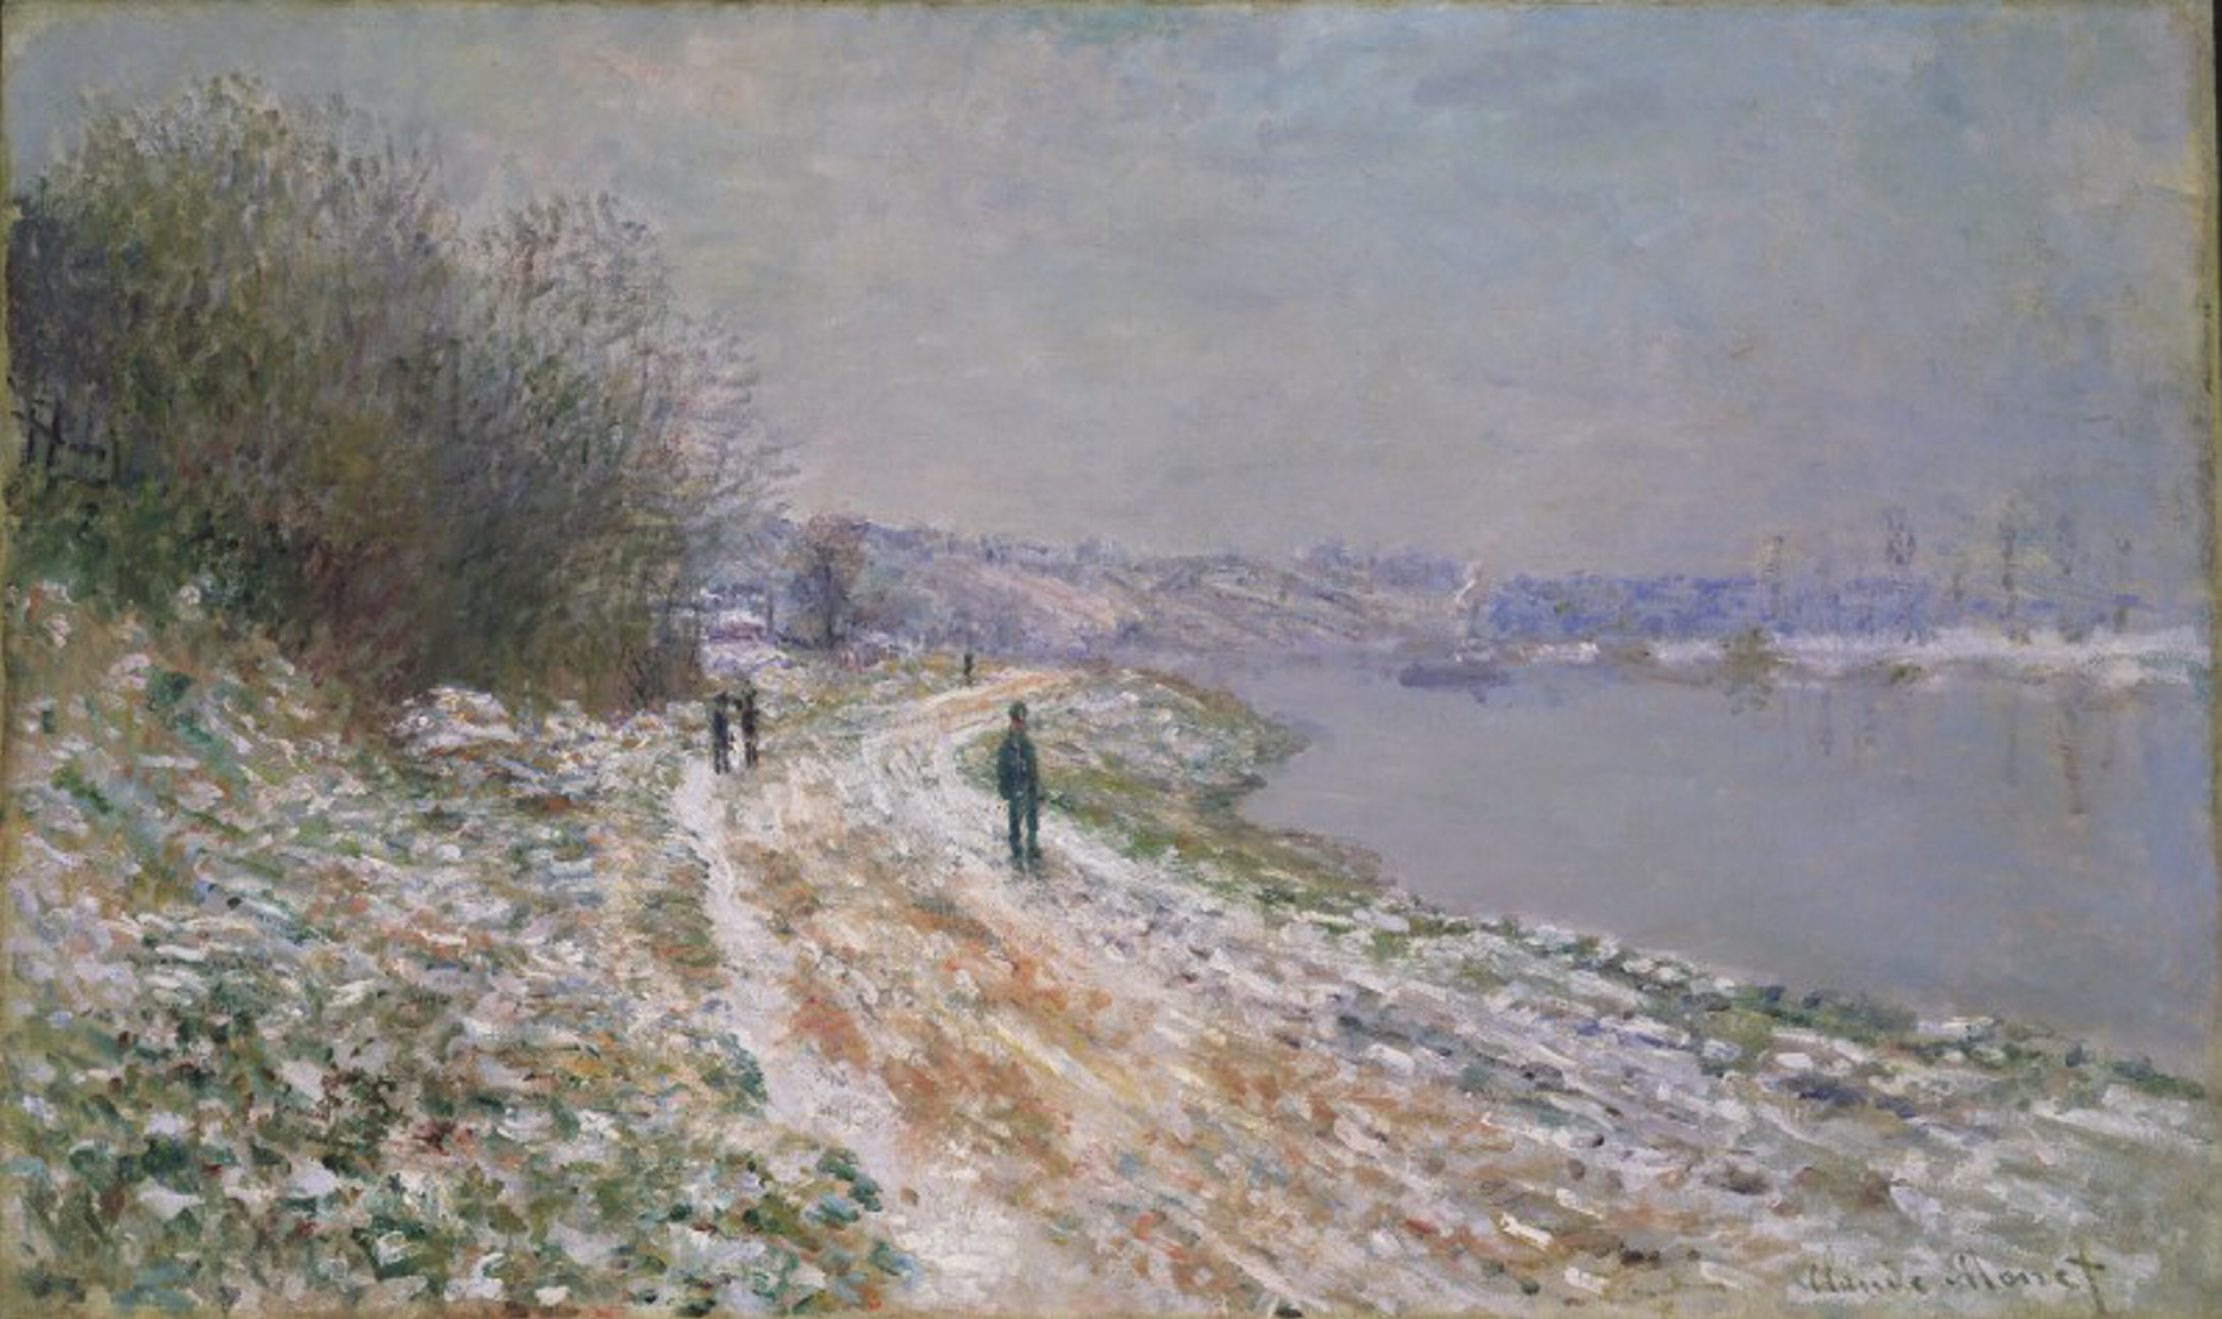 Claude Monet's painting from about 1875, 'Chemin de Halage a Argenteuil (Tow-path at Argenteuil),' is one of many impressionist works in the Albright-Knox Art Gallery's collection.